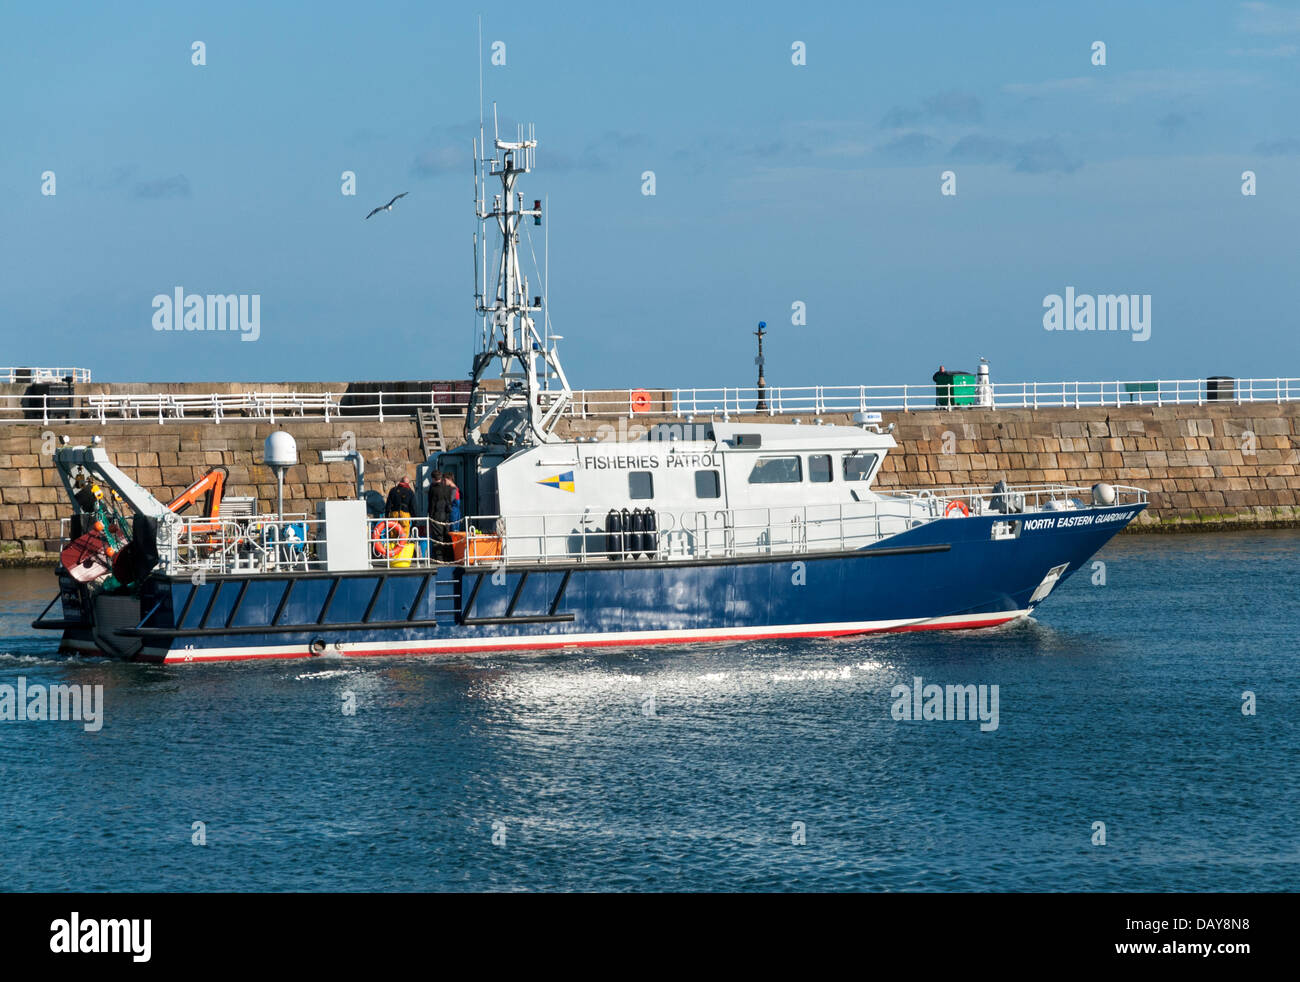 Great Britain, England, North Yorkshire, Whitby, River Esk, harbour, Fisheries Patrol Boat - Stock Image